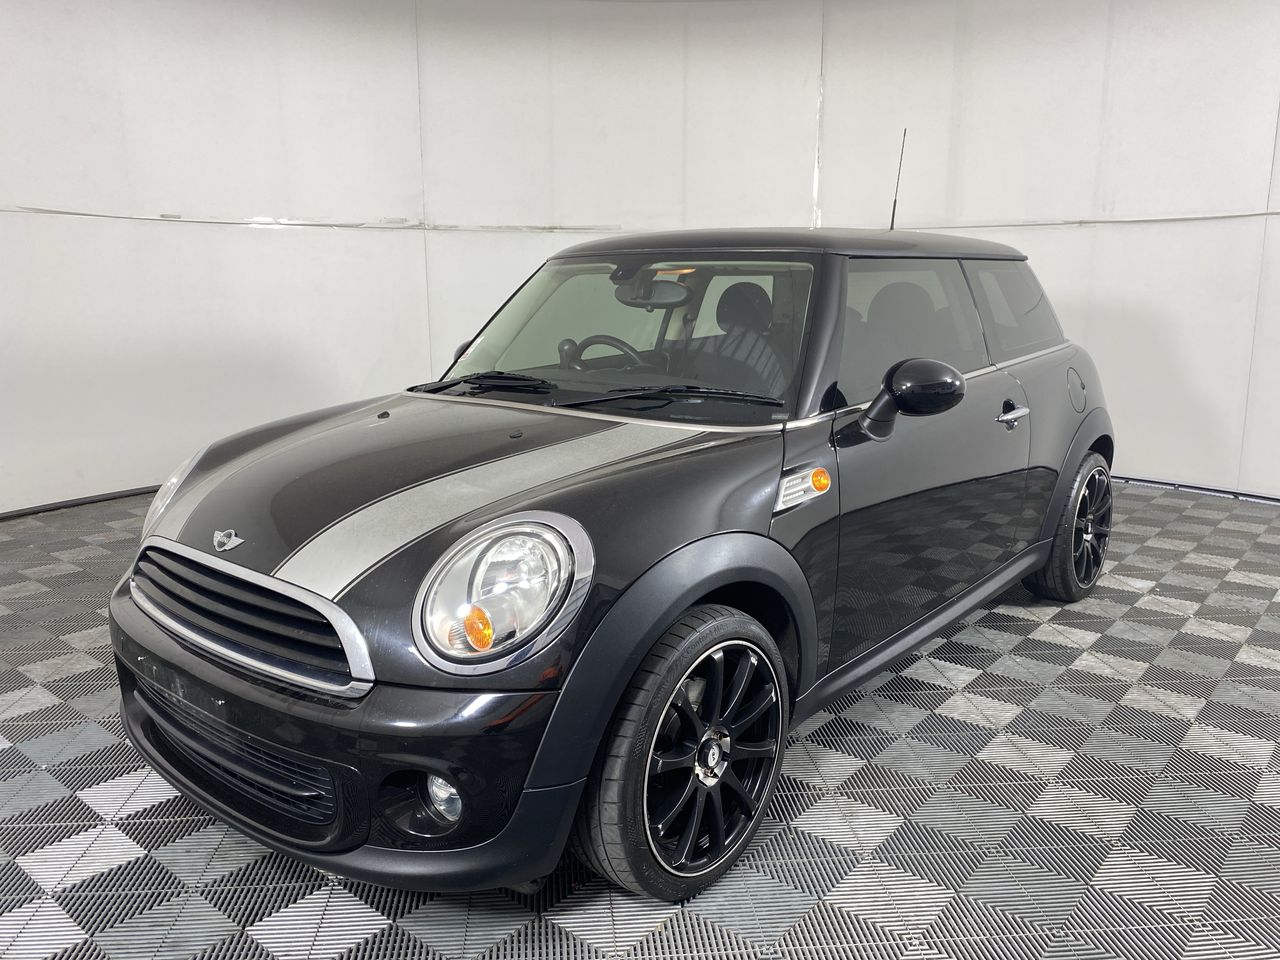 2011 Mini Ray R56 LCI Auto Hatchback (WOVR+Inspected) 100,809 km's